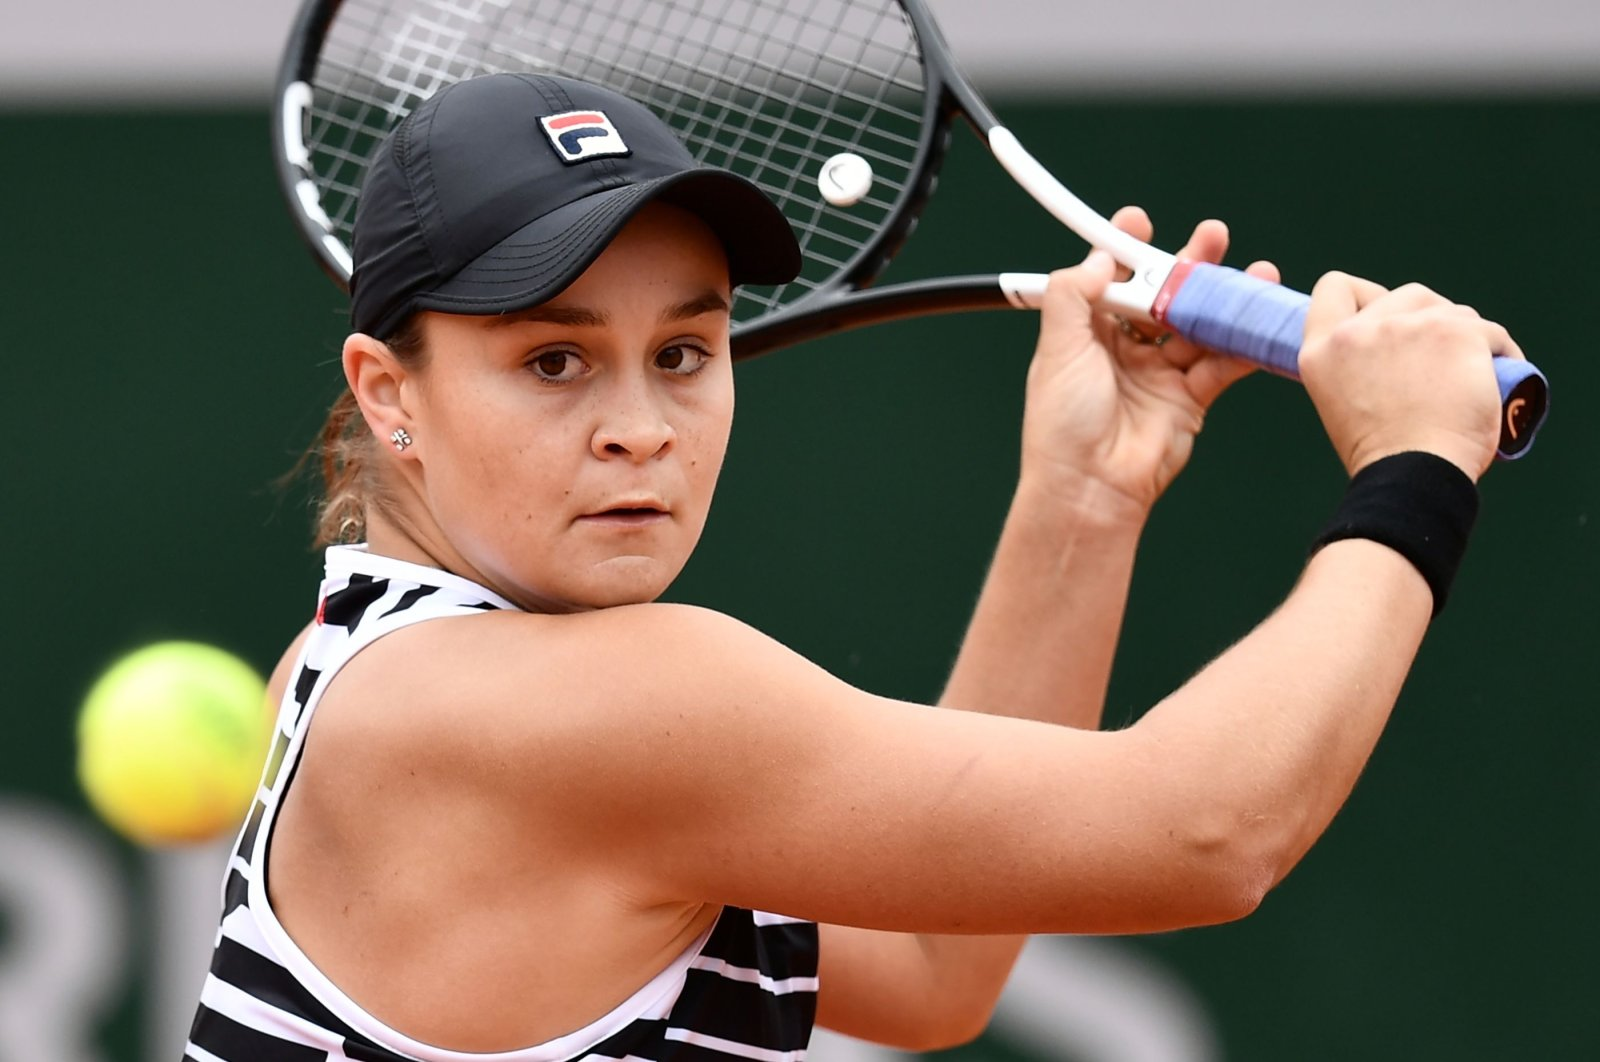 Ashleigh Barty hits a return during a women's semifinal match at the French Open tennis tournament in Paris, France, June 7, 2019. (AFP Photo)